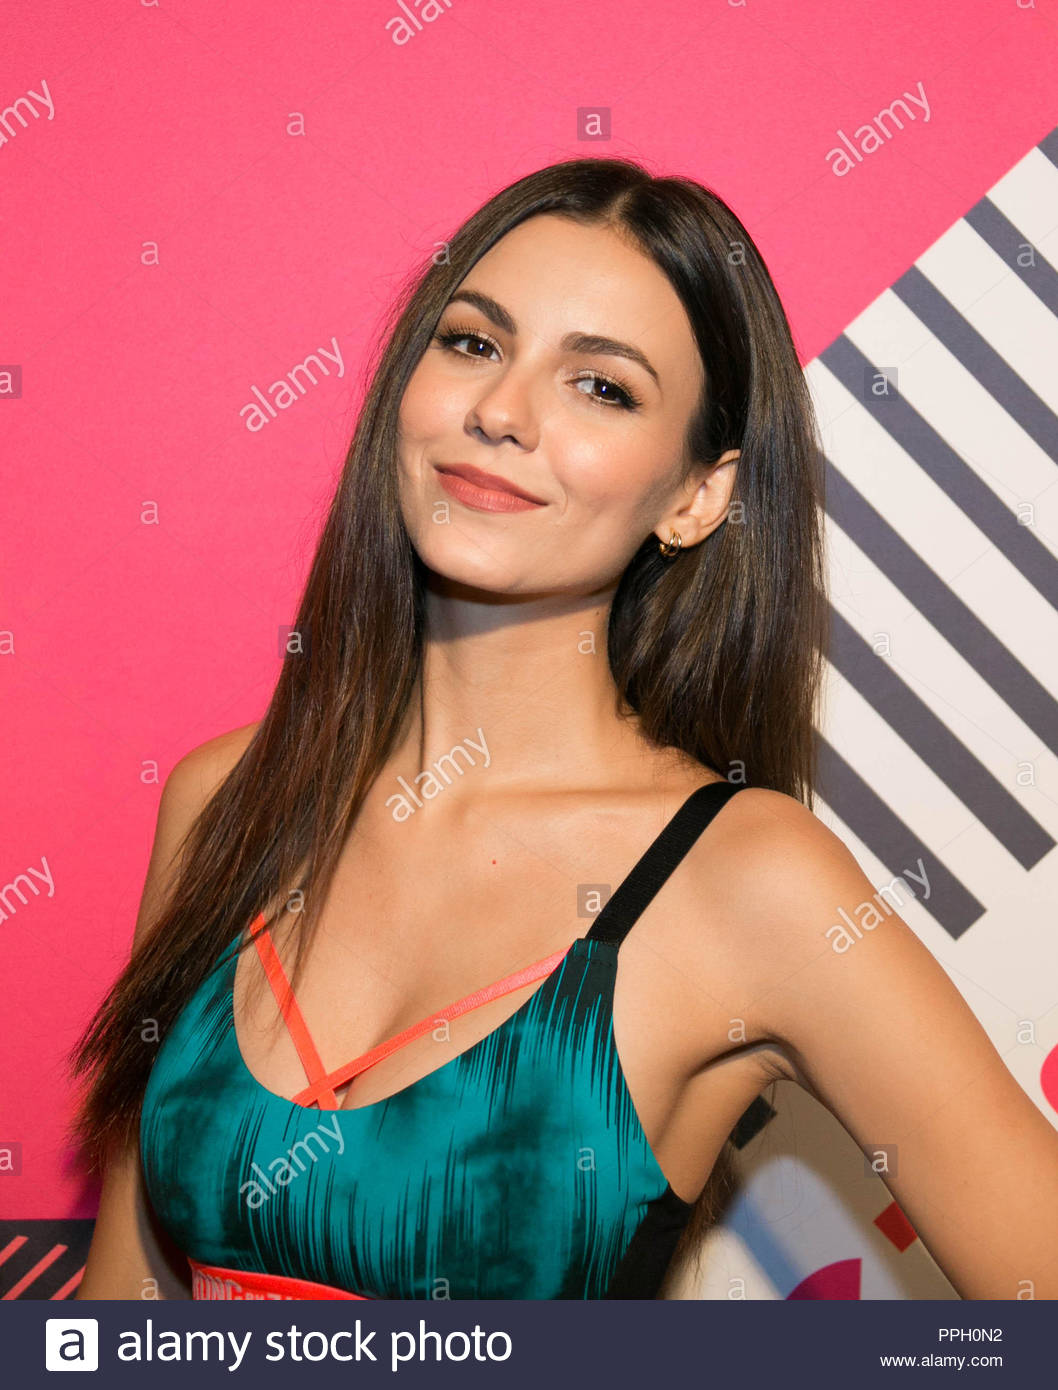 New York, NY, USA. Sept 25, 2018. Victoria Justice attends ...